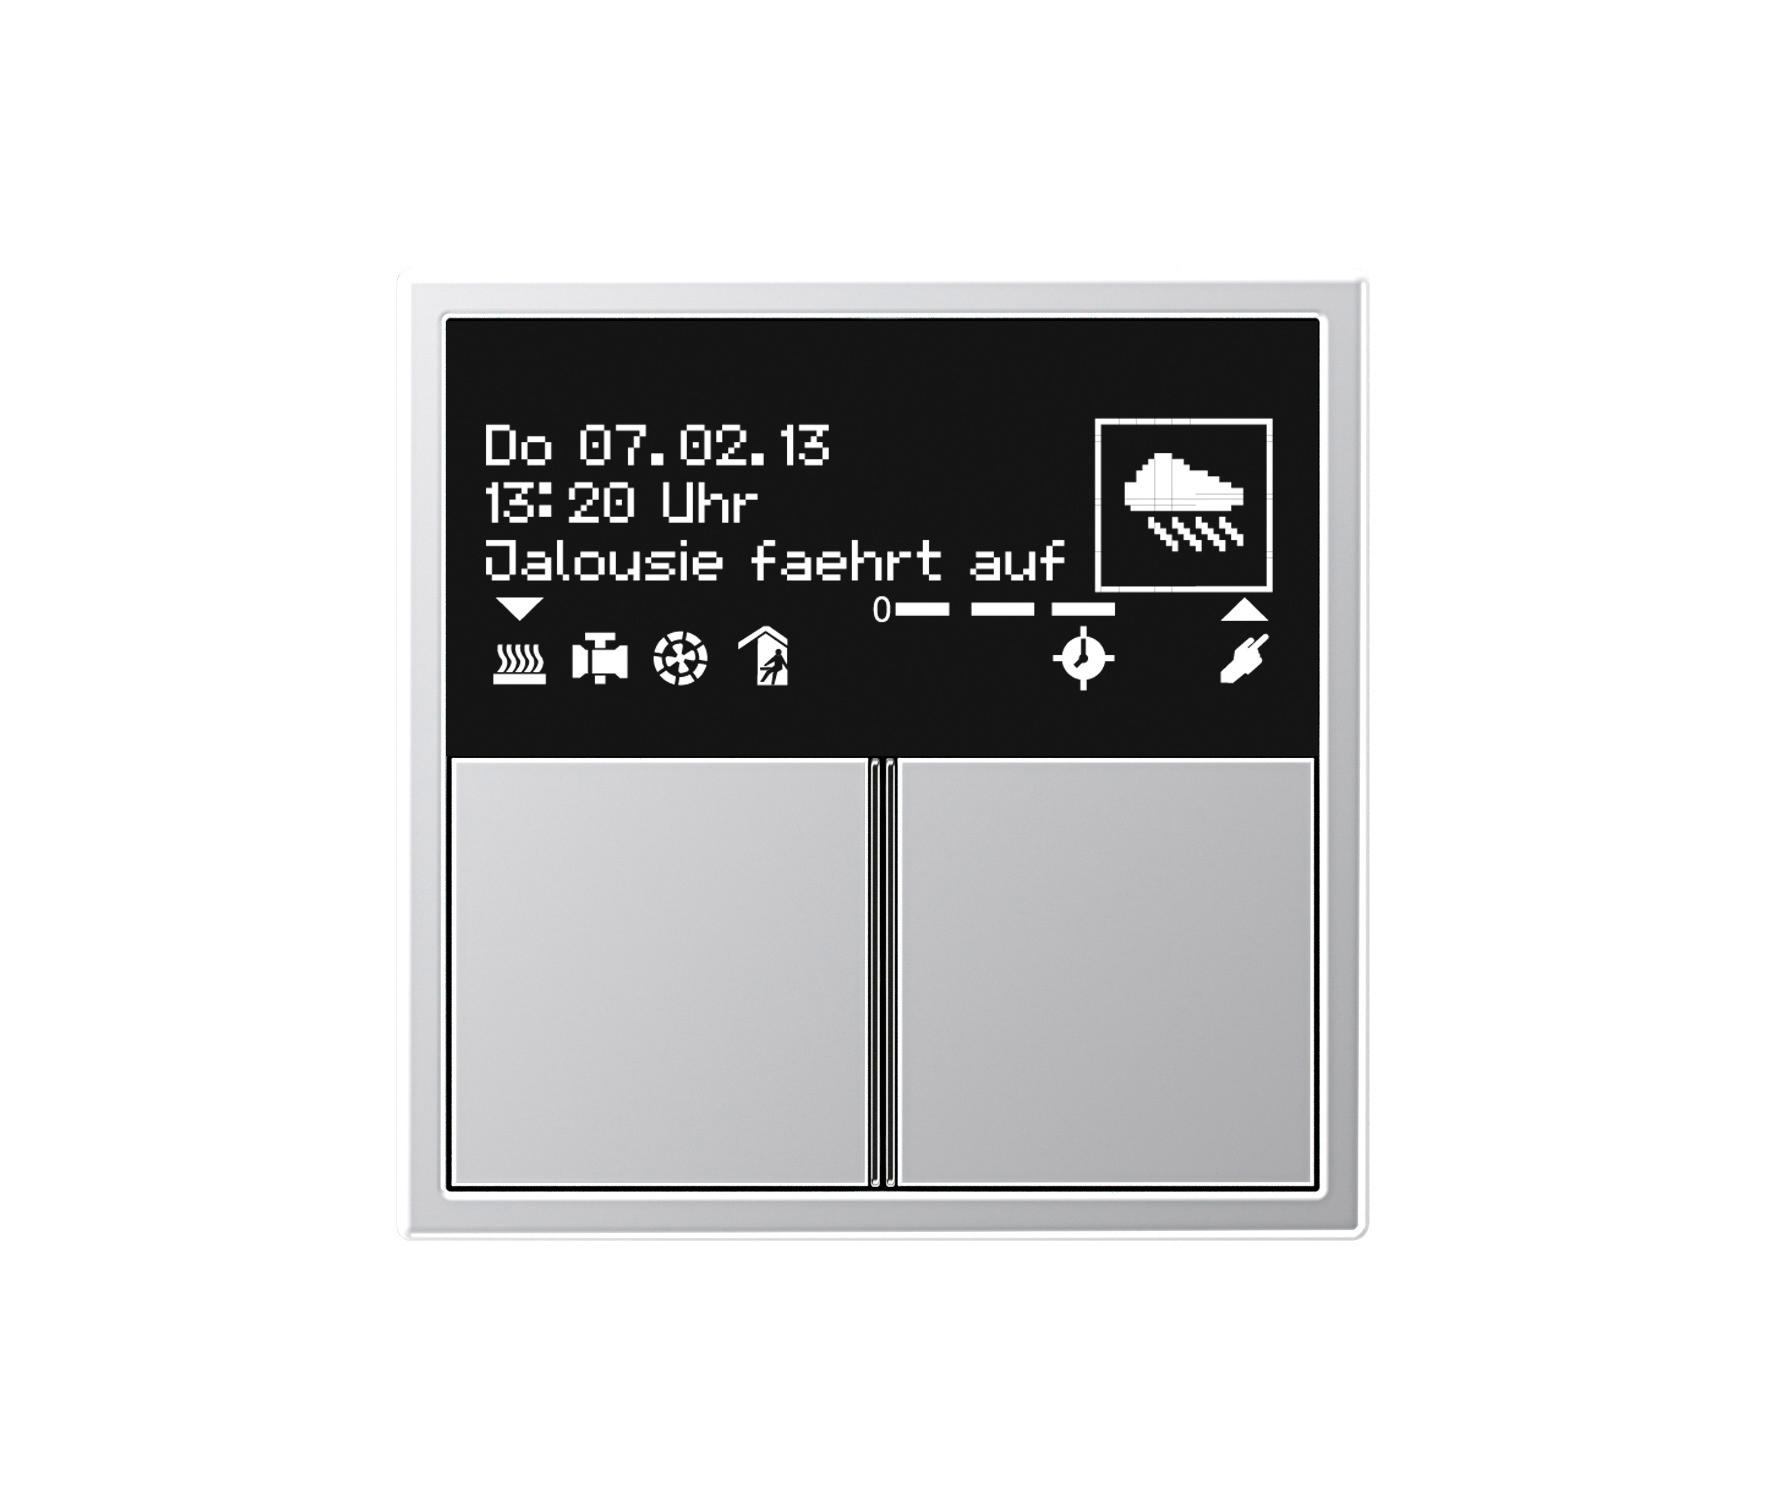 knx room controller oled ls 990 knx systems from jung. Black Bedroom Furniture Sets. Home Design Ideas